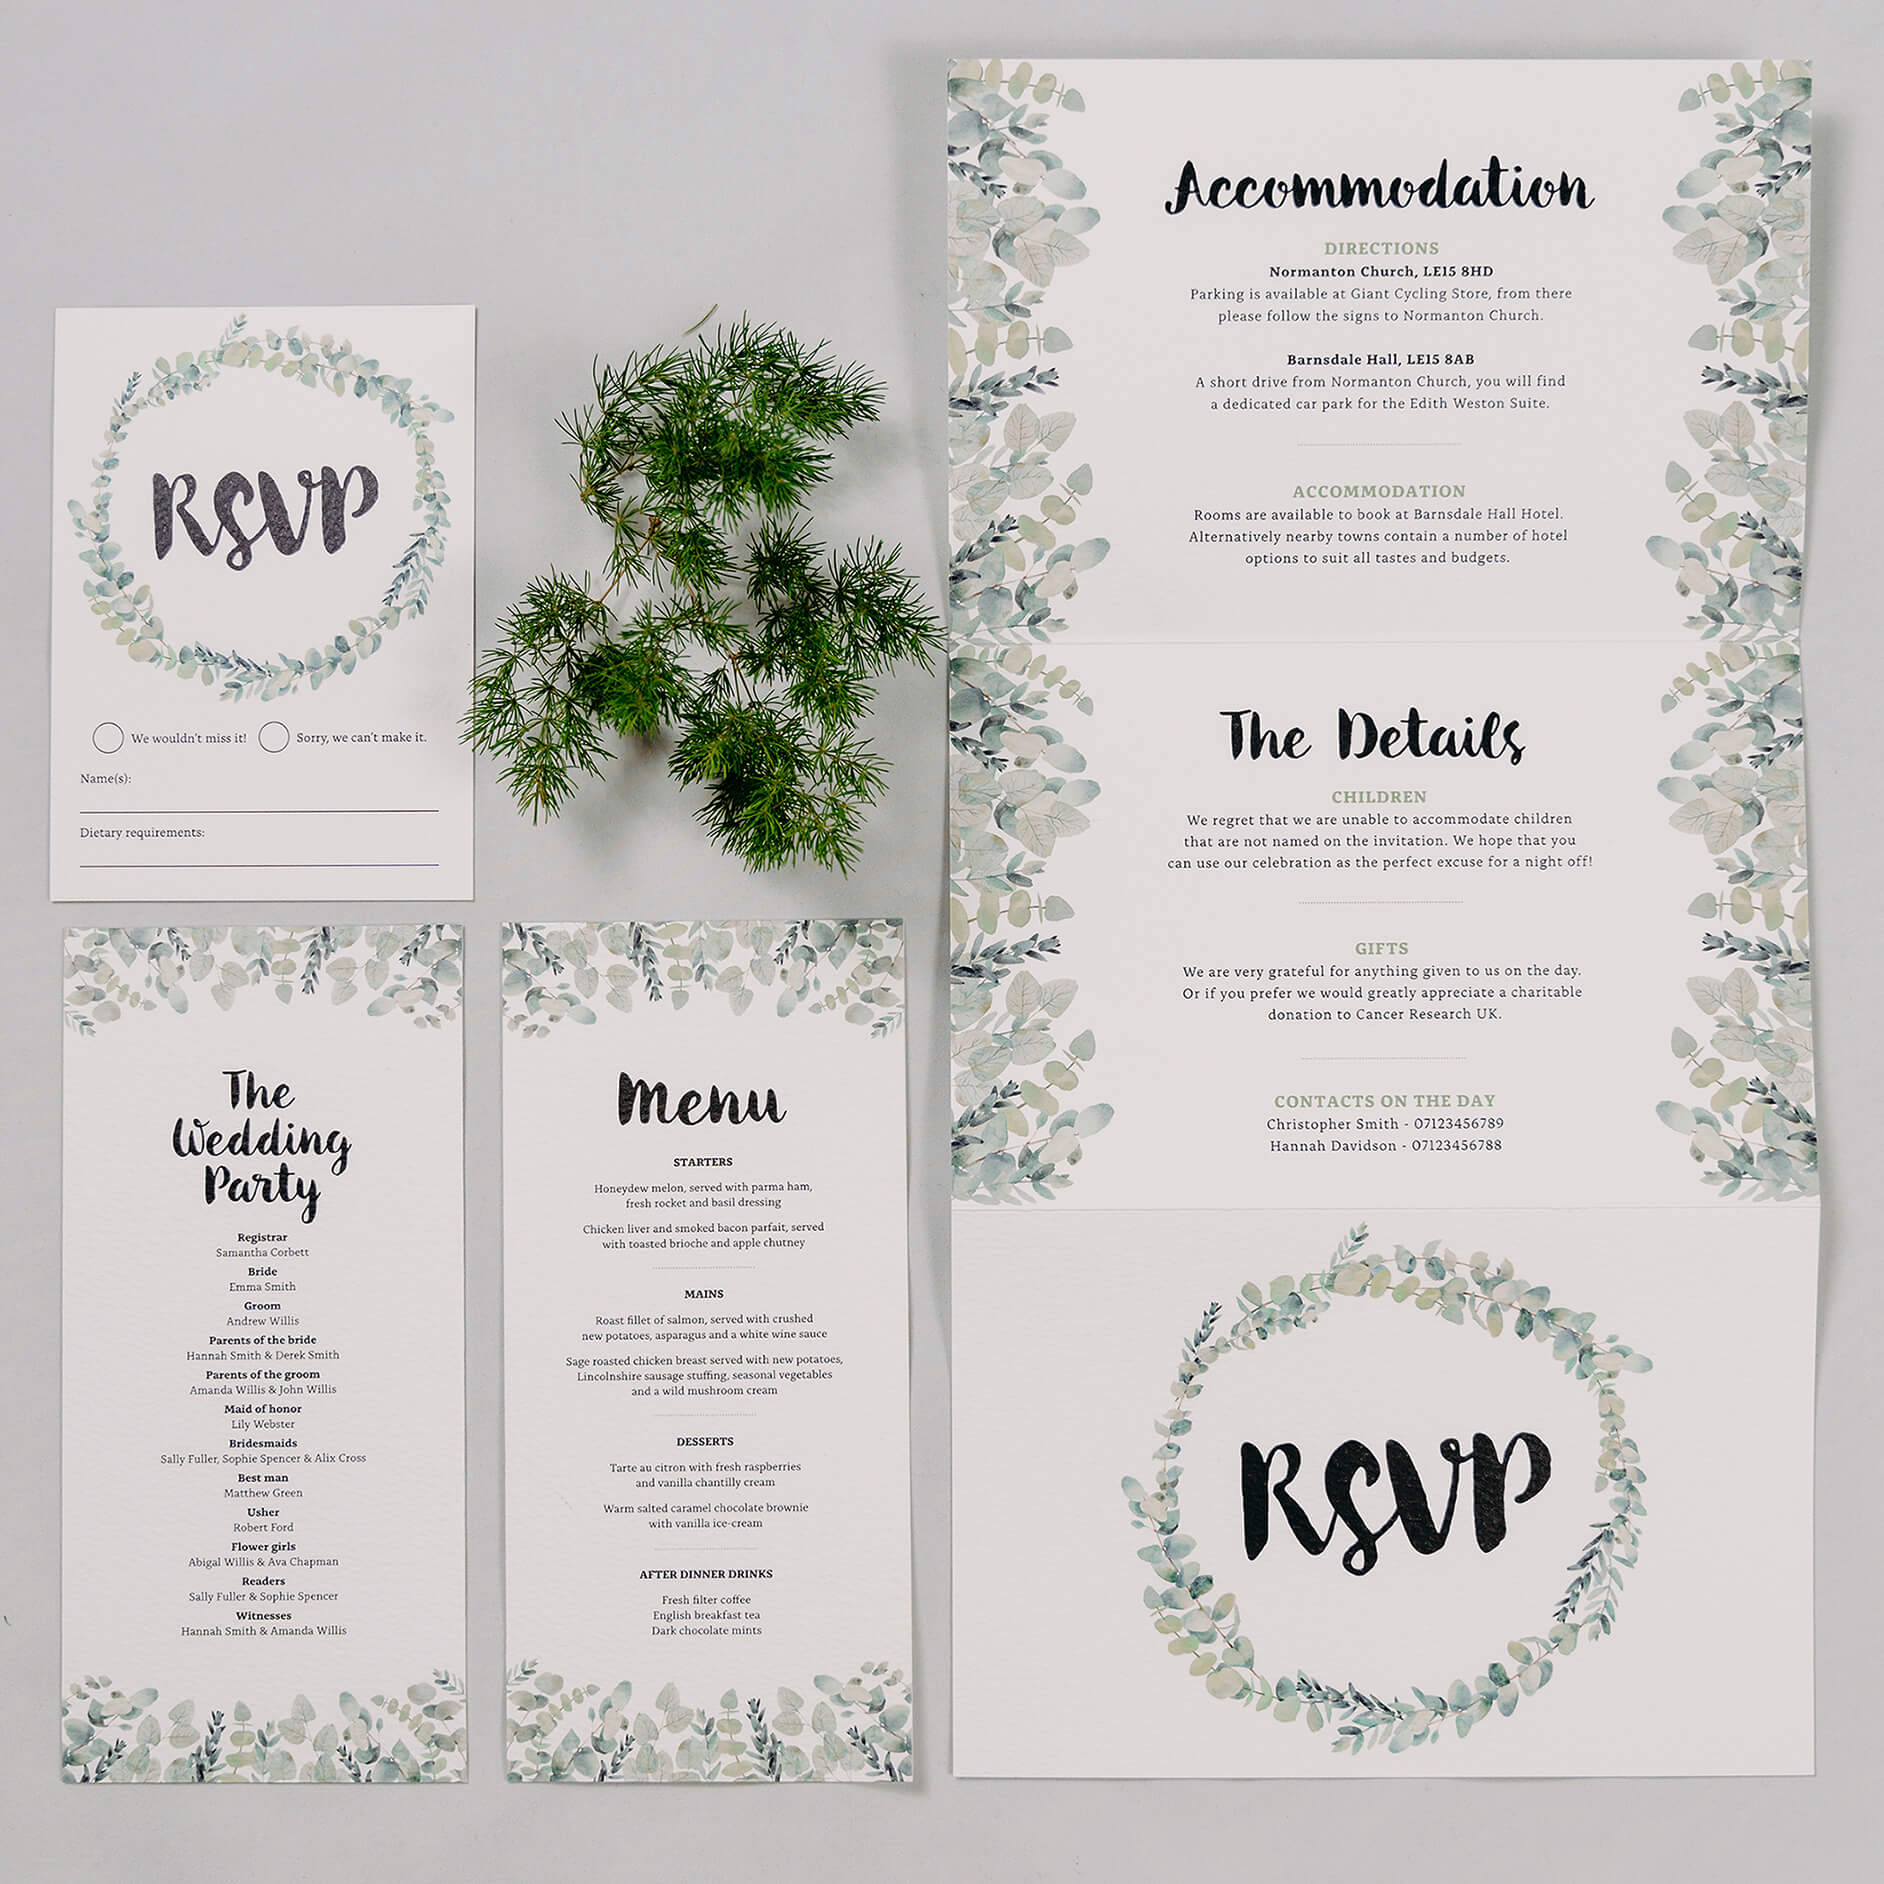 Rustic Green & White Eucalyptus Concertina Folded Wedding Invitation, RSVP Postcard, Wedding Menu & Wedding Order Of Service Card